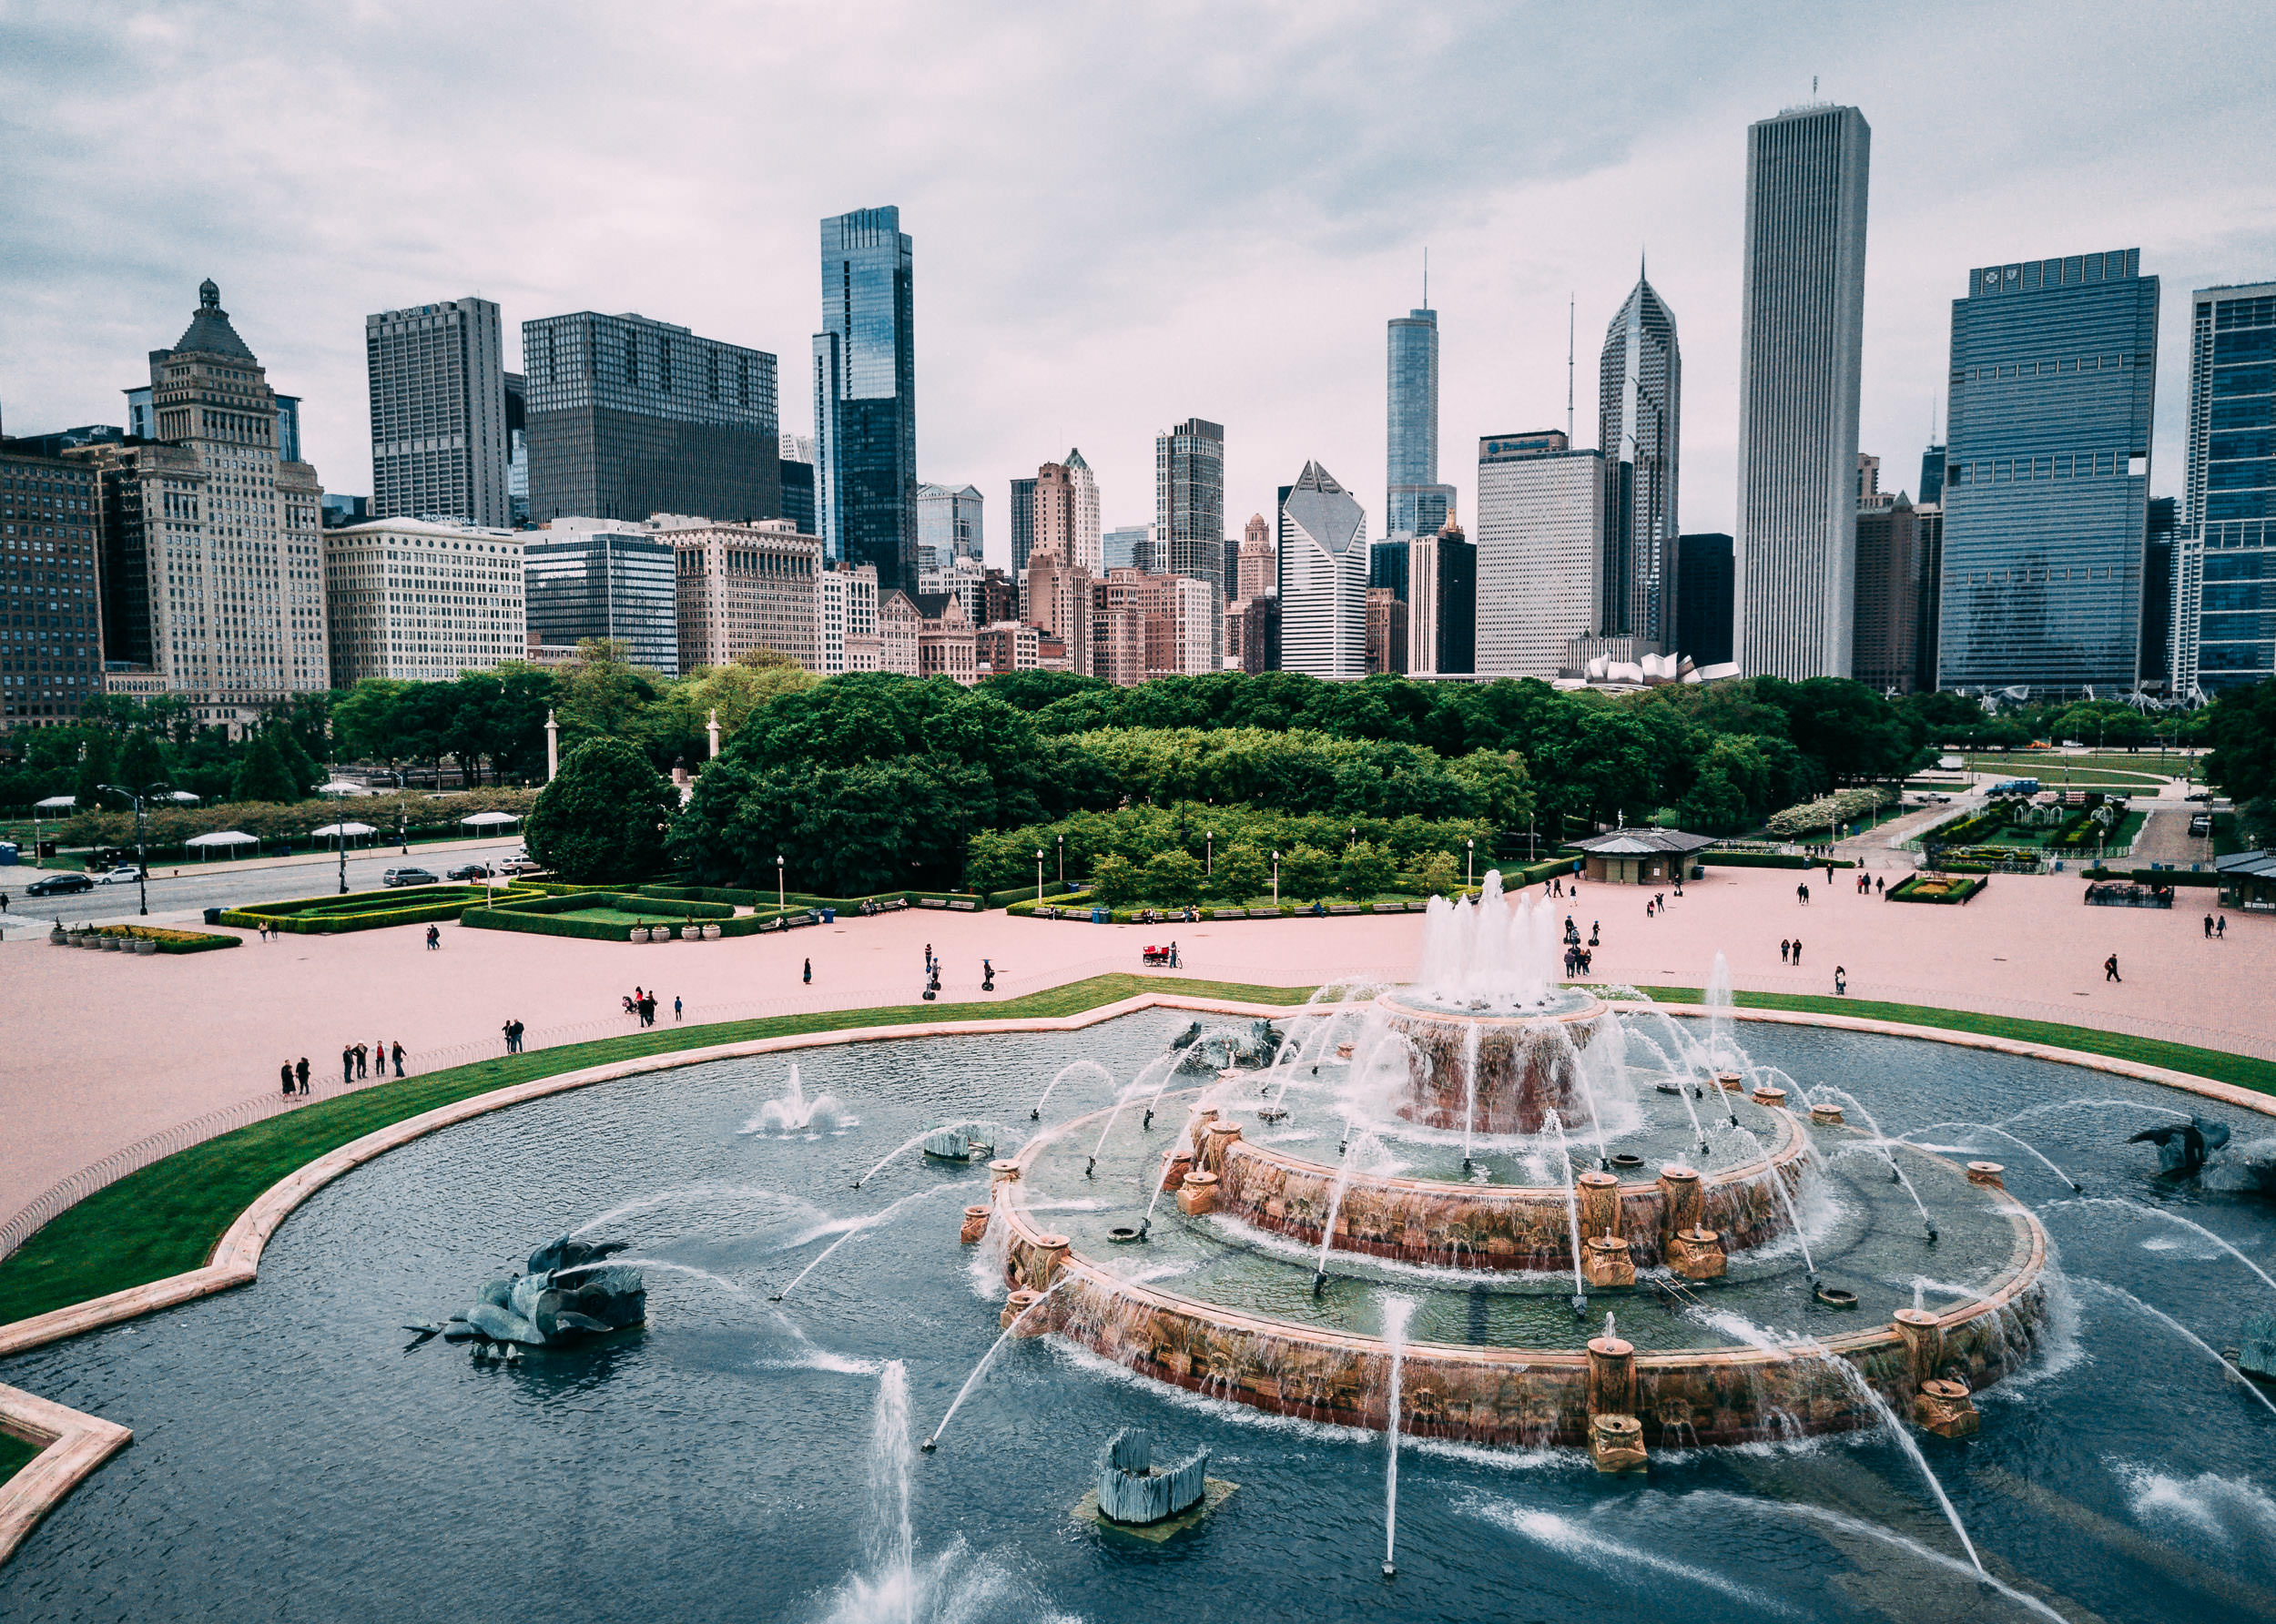 2017.05.26_Mavic_Buckingham_Fountain_Navy_Pier-0020.jpg